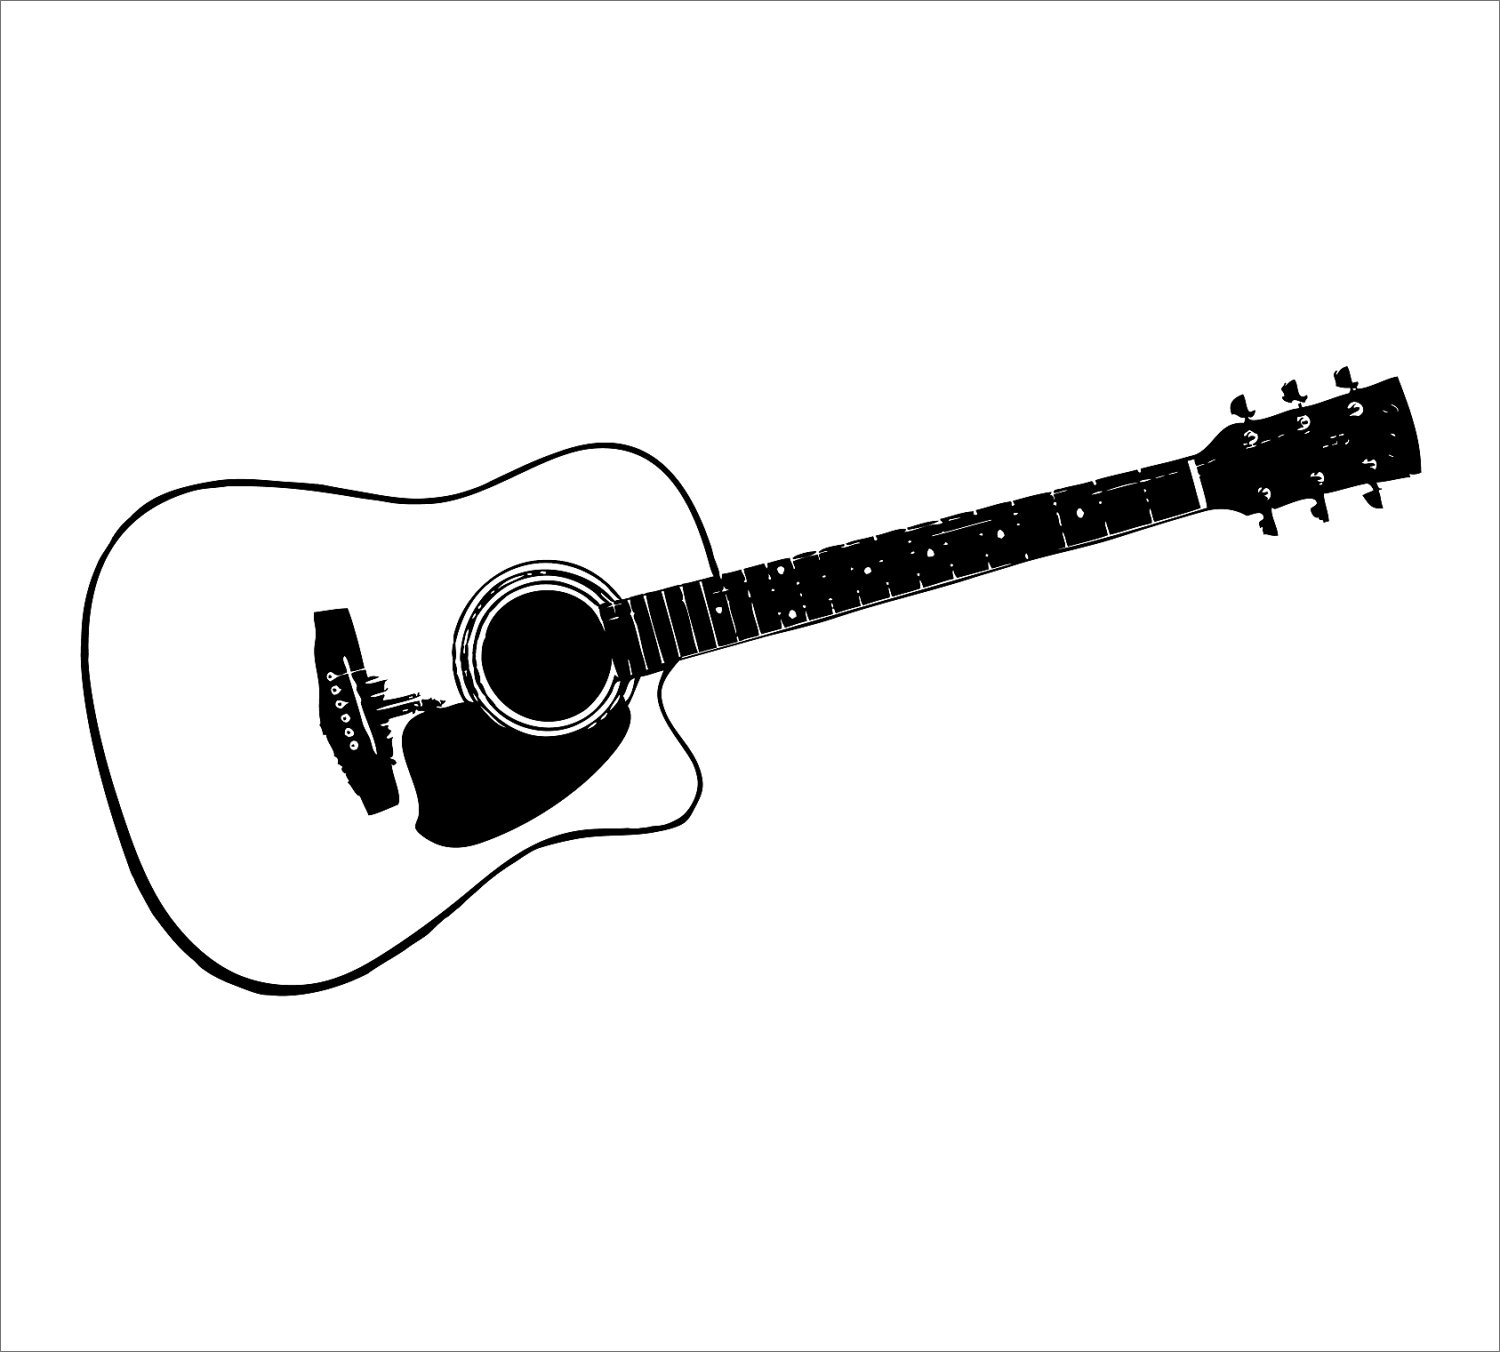 Outline Of A Guitar - ClipArt Best